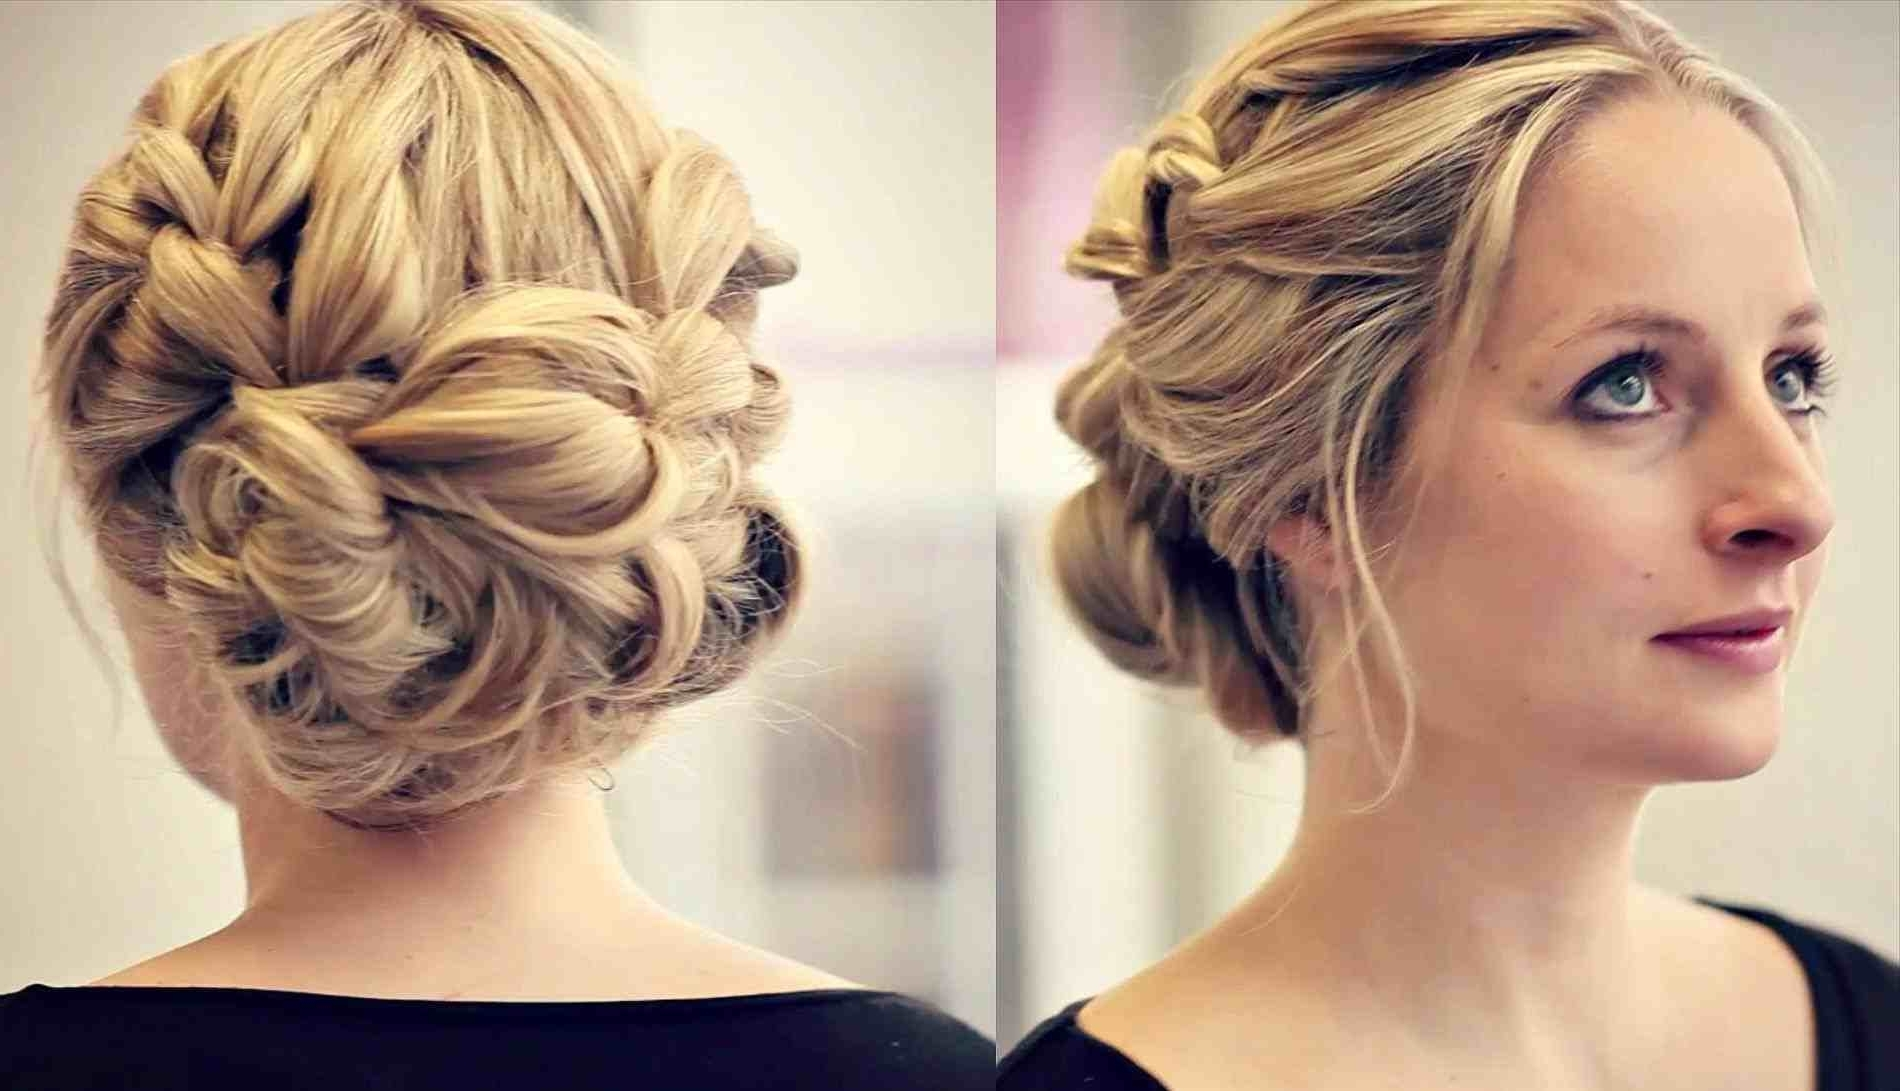 Elegant Hairstyles For Short Hair – Short Medium Long Hairstyle In Bridesmaid Hairstyles Updos For Short Hair (Gallery 5 of 15)